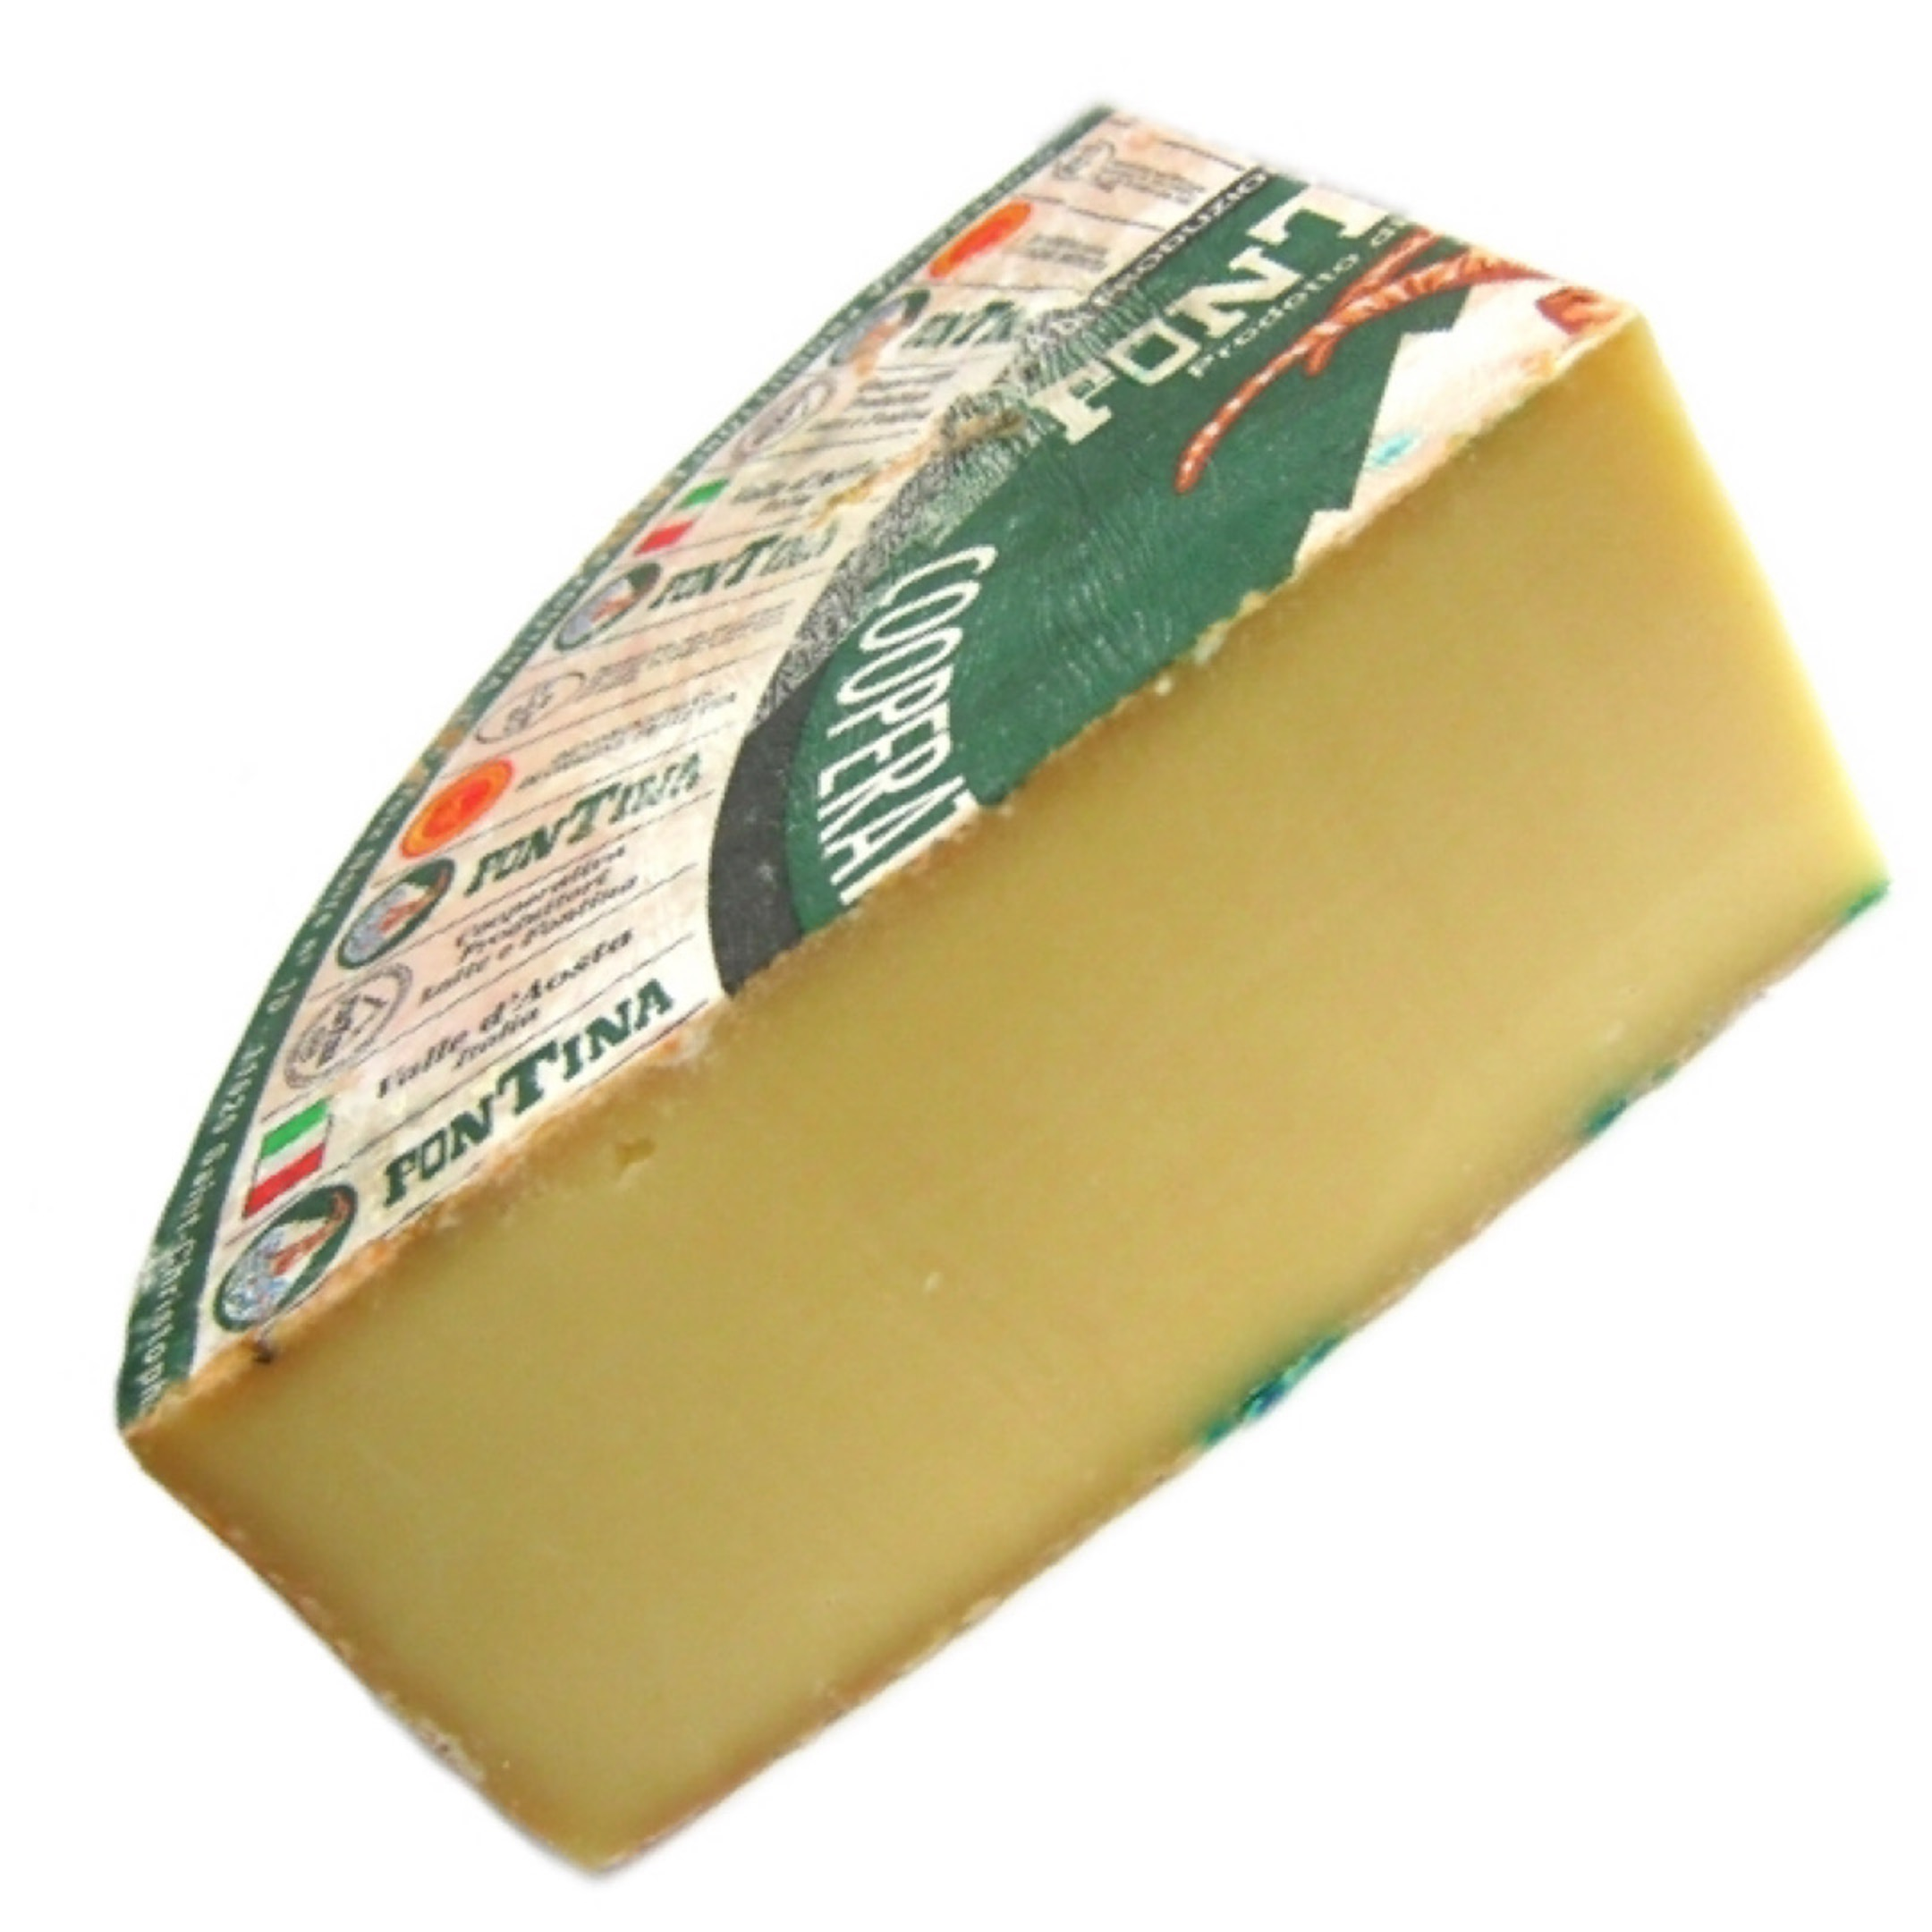 Fontina Cheese - Raw Cow's Milk 250g